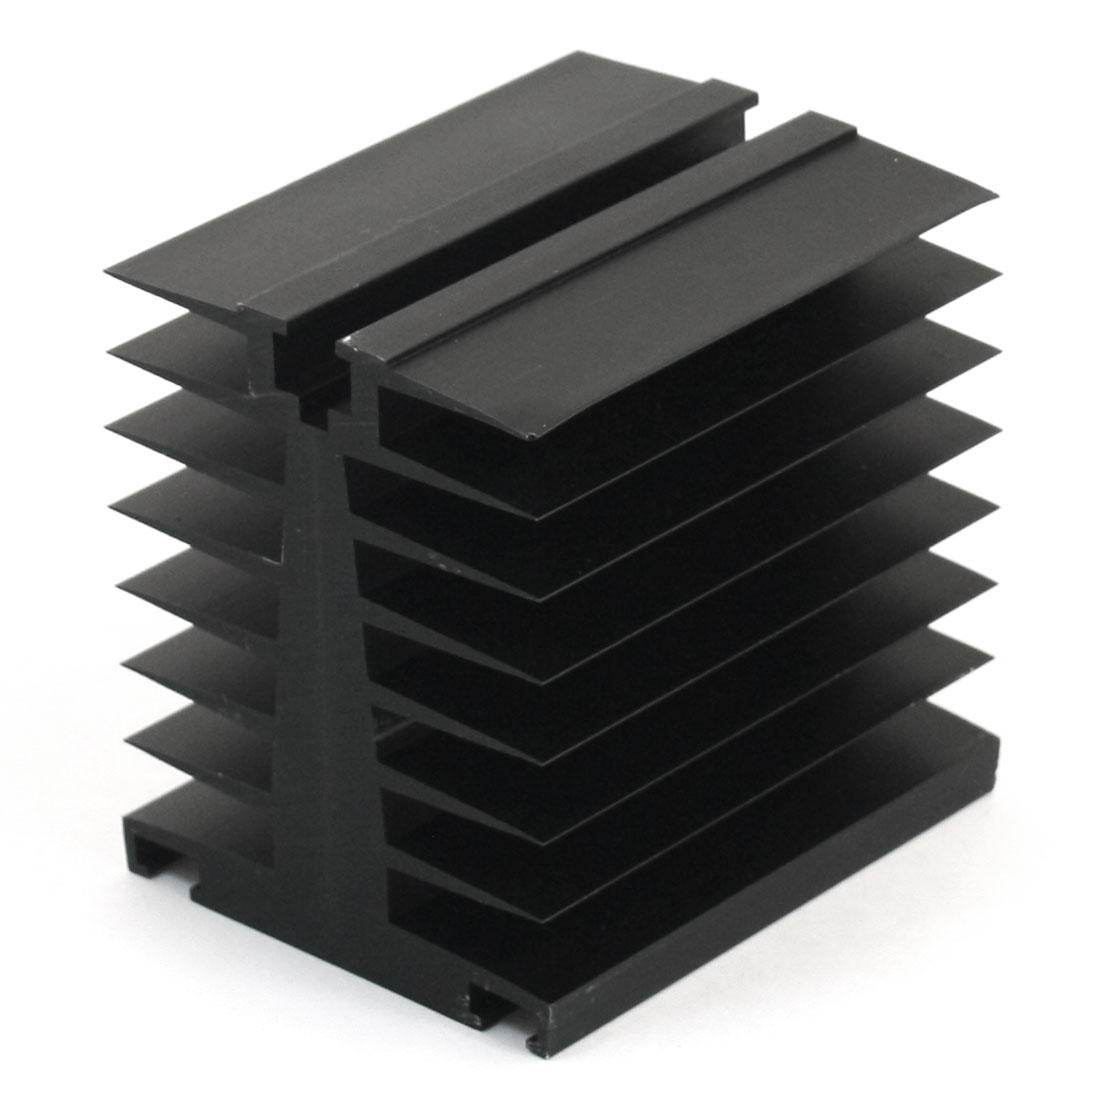 Black Aluminum Single Phase Solid State Relay Heat Diffuse Heatsink Cooling Fin 80mm x 80mm x 66mm